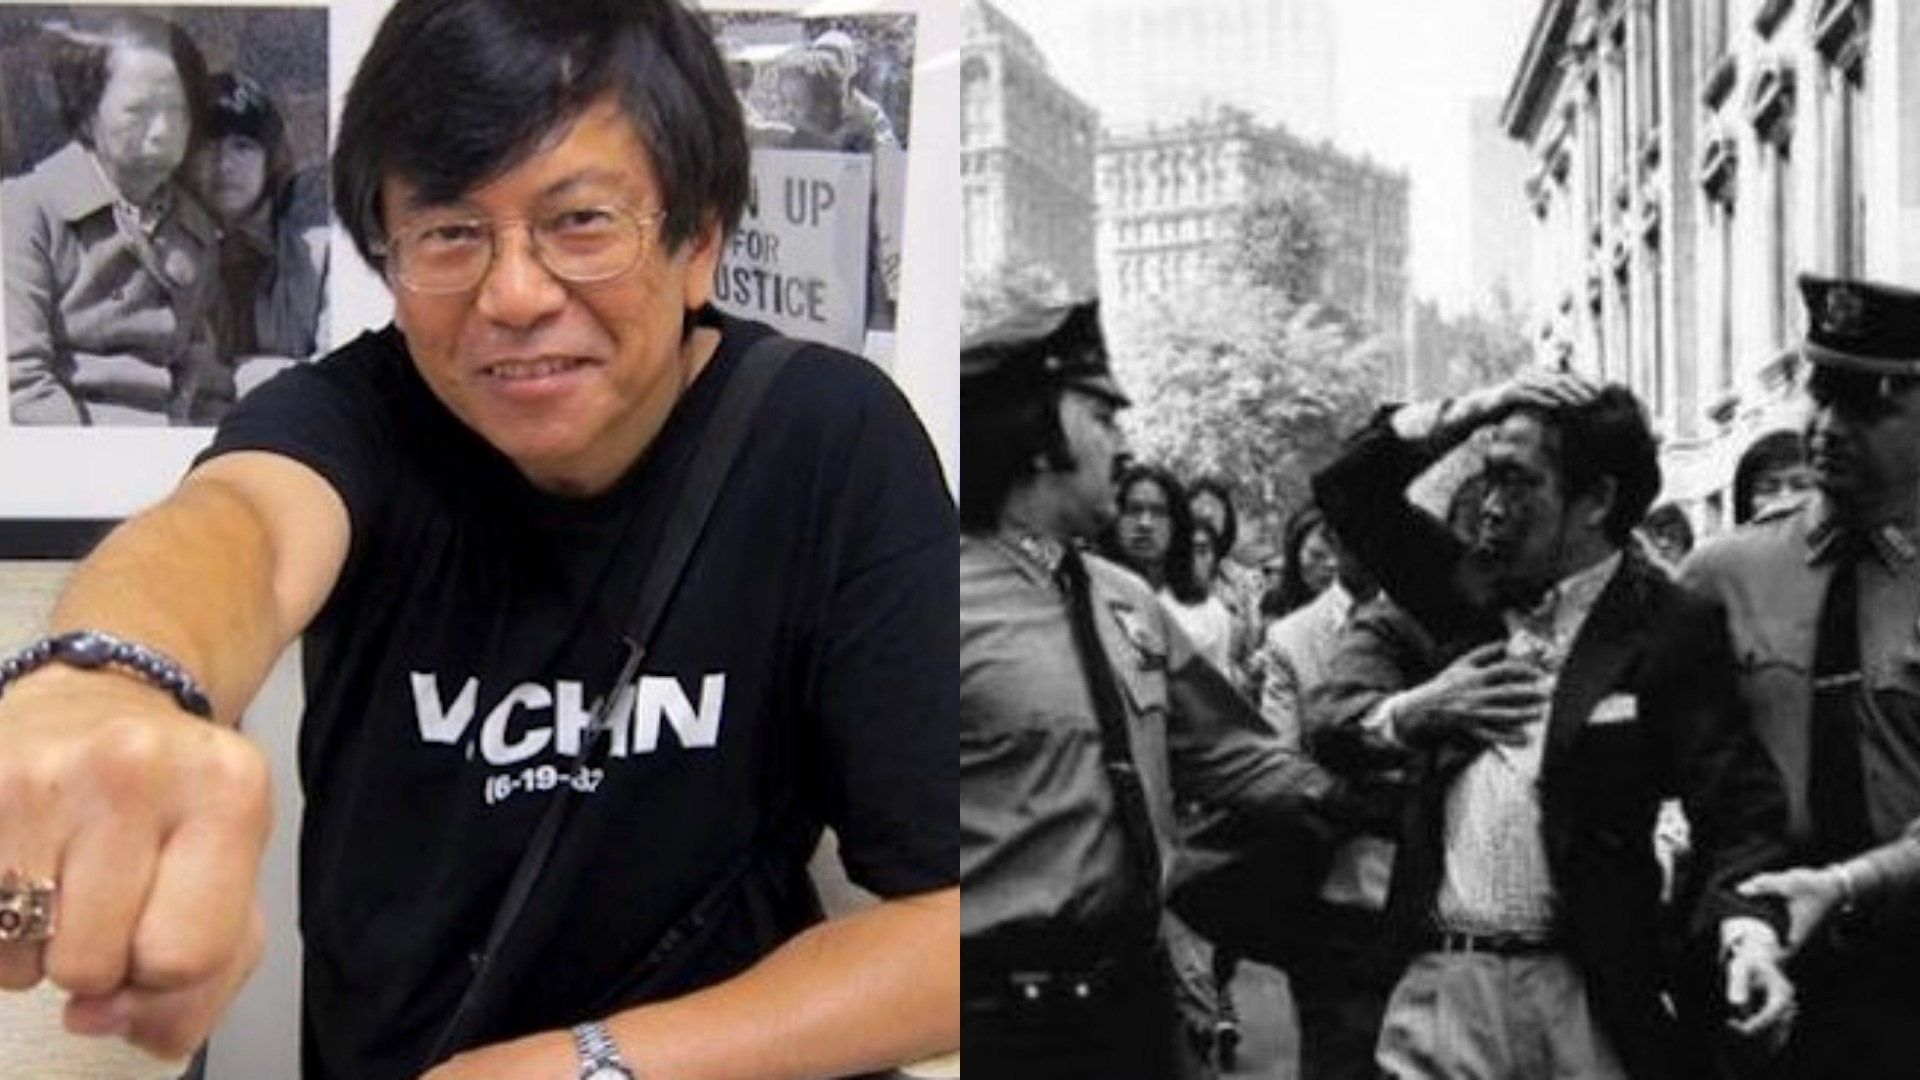 www.weareresonate.com: Asian American photographer and activist Corky Lee dies aged 73 after Covid-19 battle